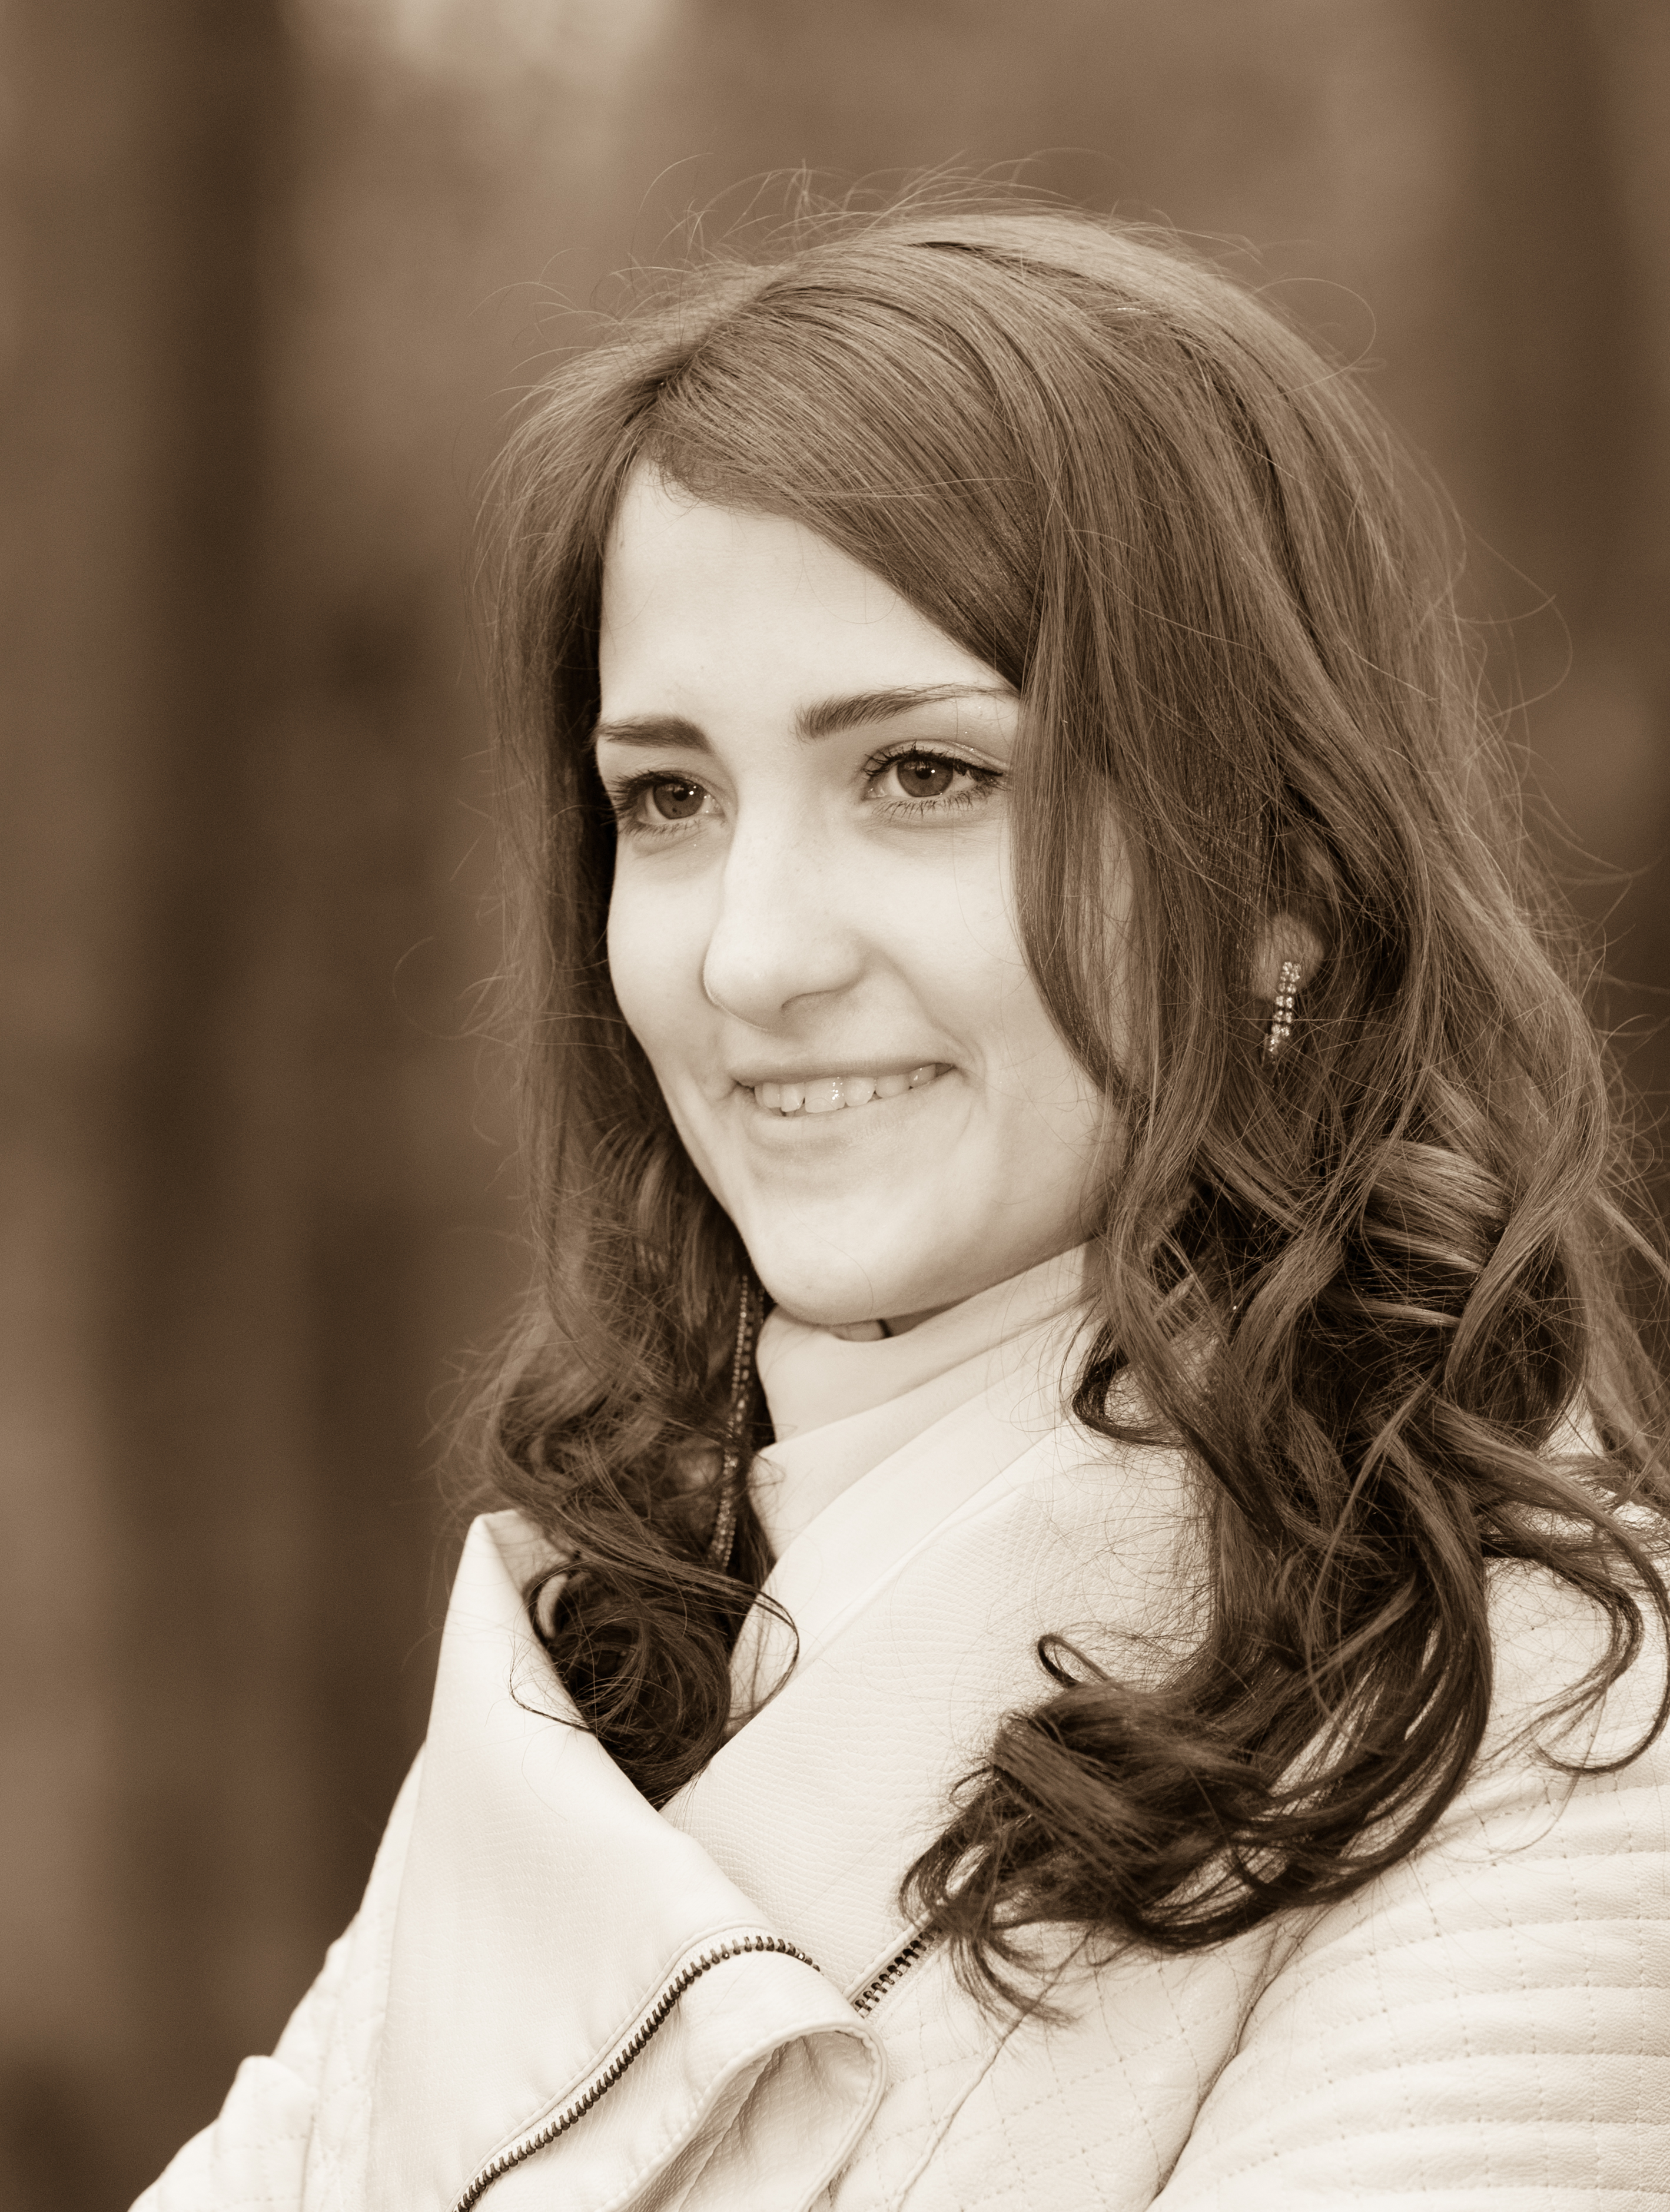 a brunette Catholic amazingly beautiful woman photographed in April 2014, black and white sepia tone, picture 9/15